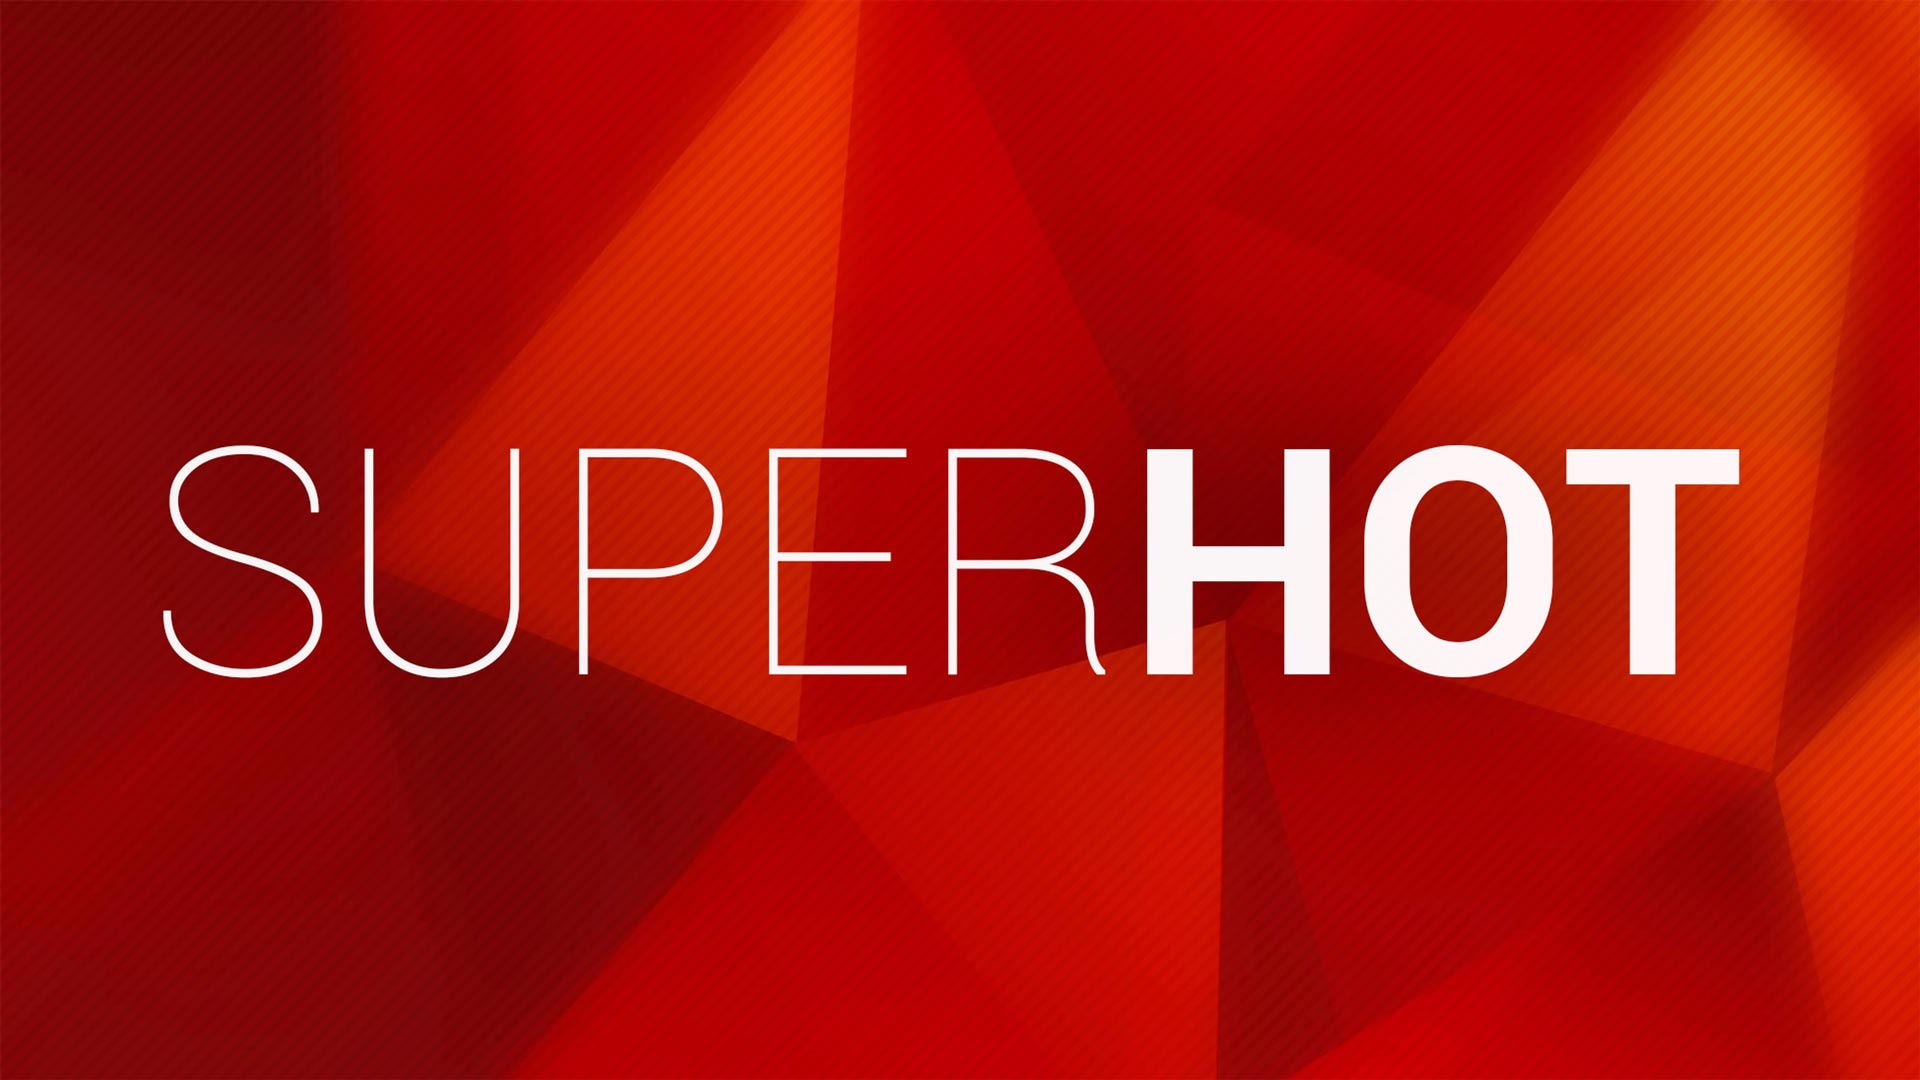 Superhot Video